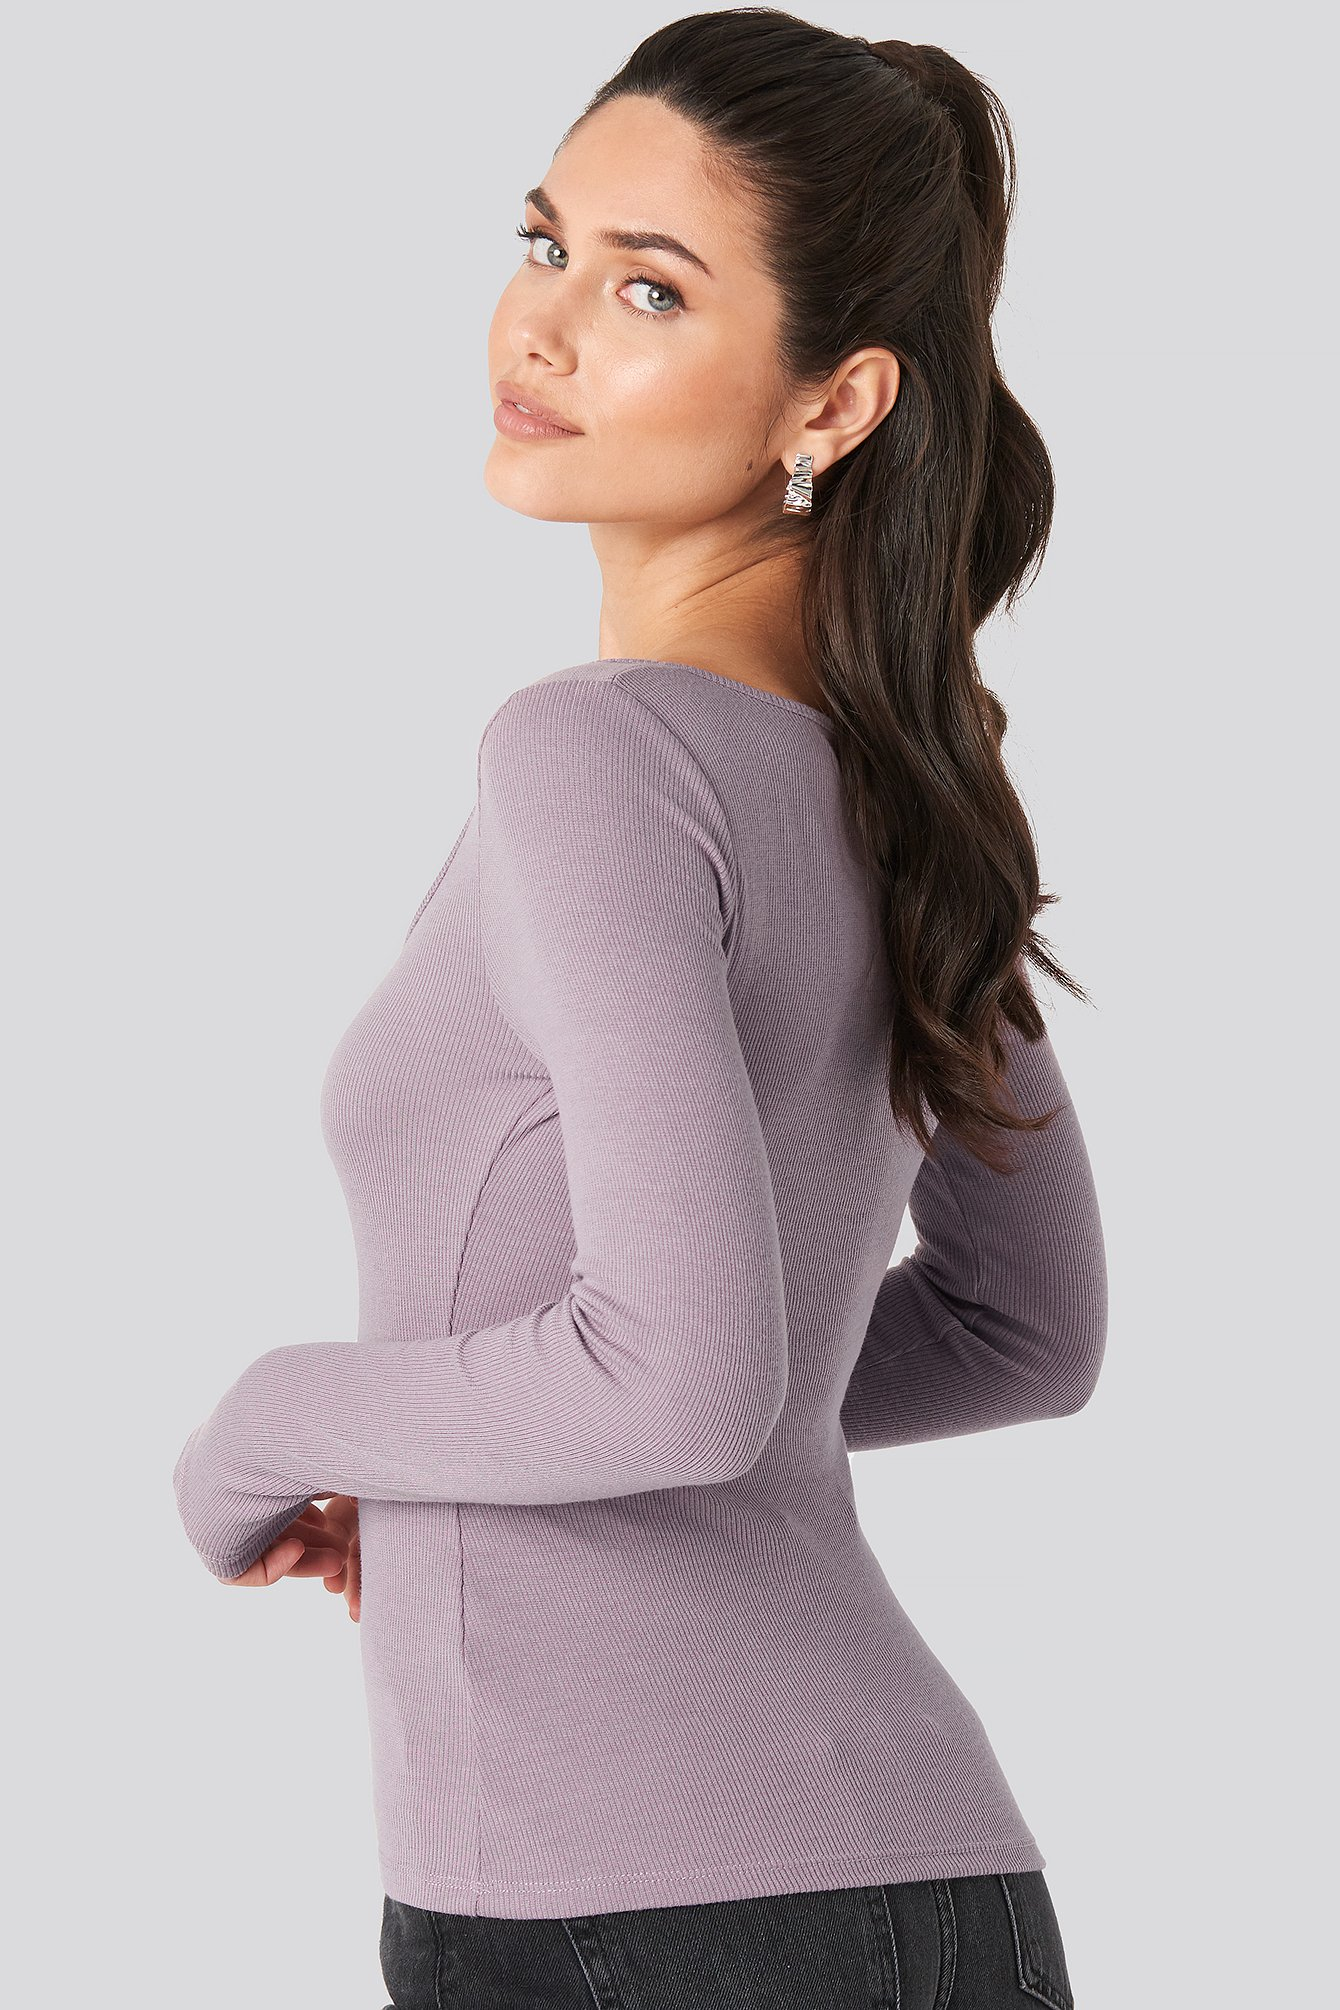 Dusty Light Purple Long Sleeve Zipped Top